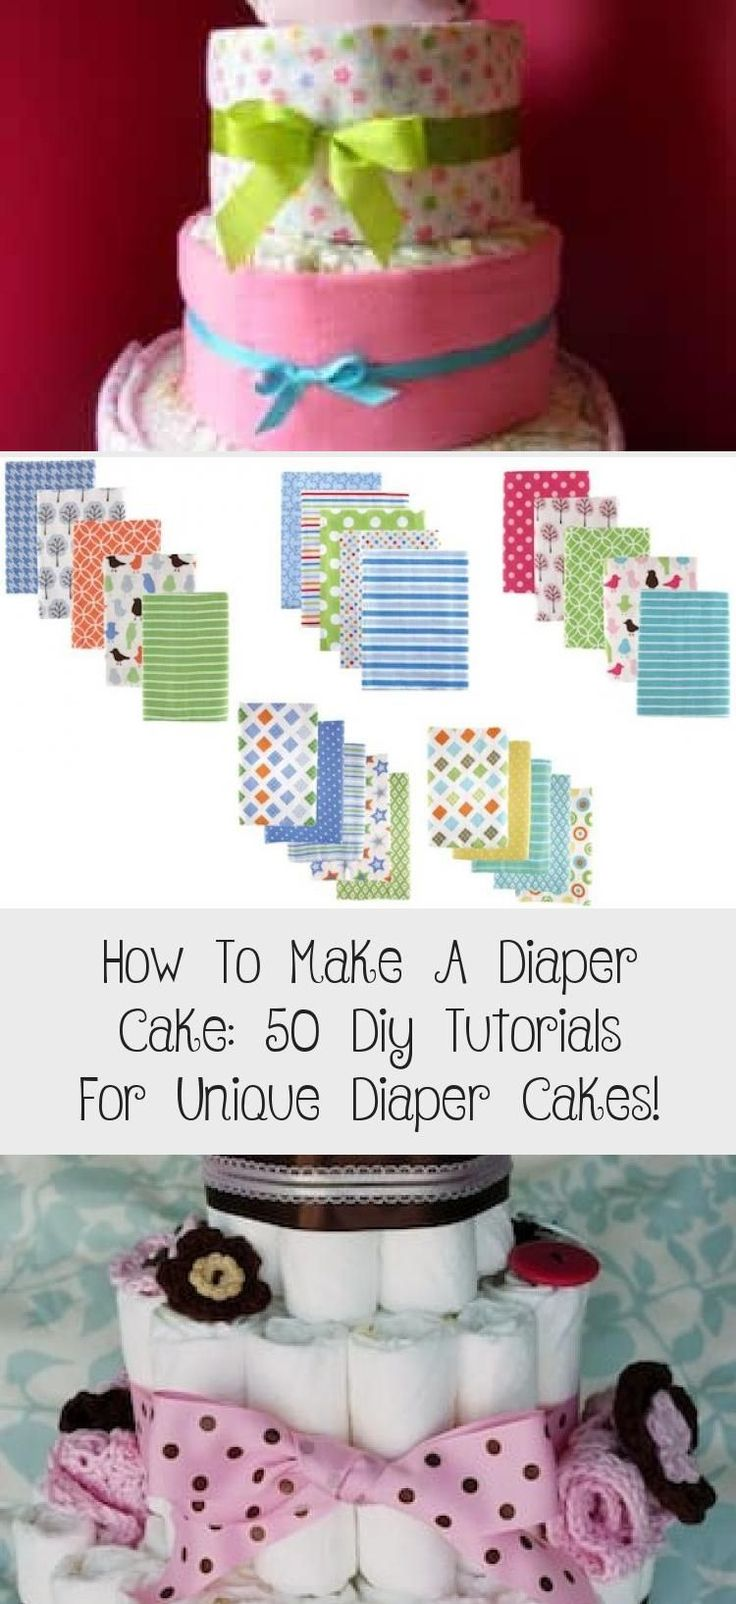 How to make a diaper cake easy step by step instructions